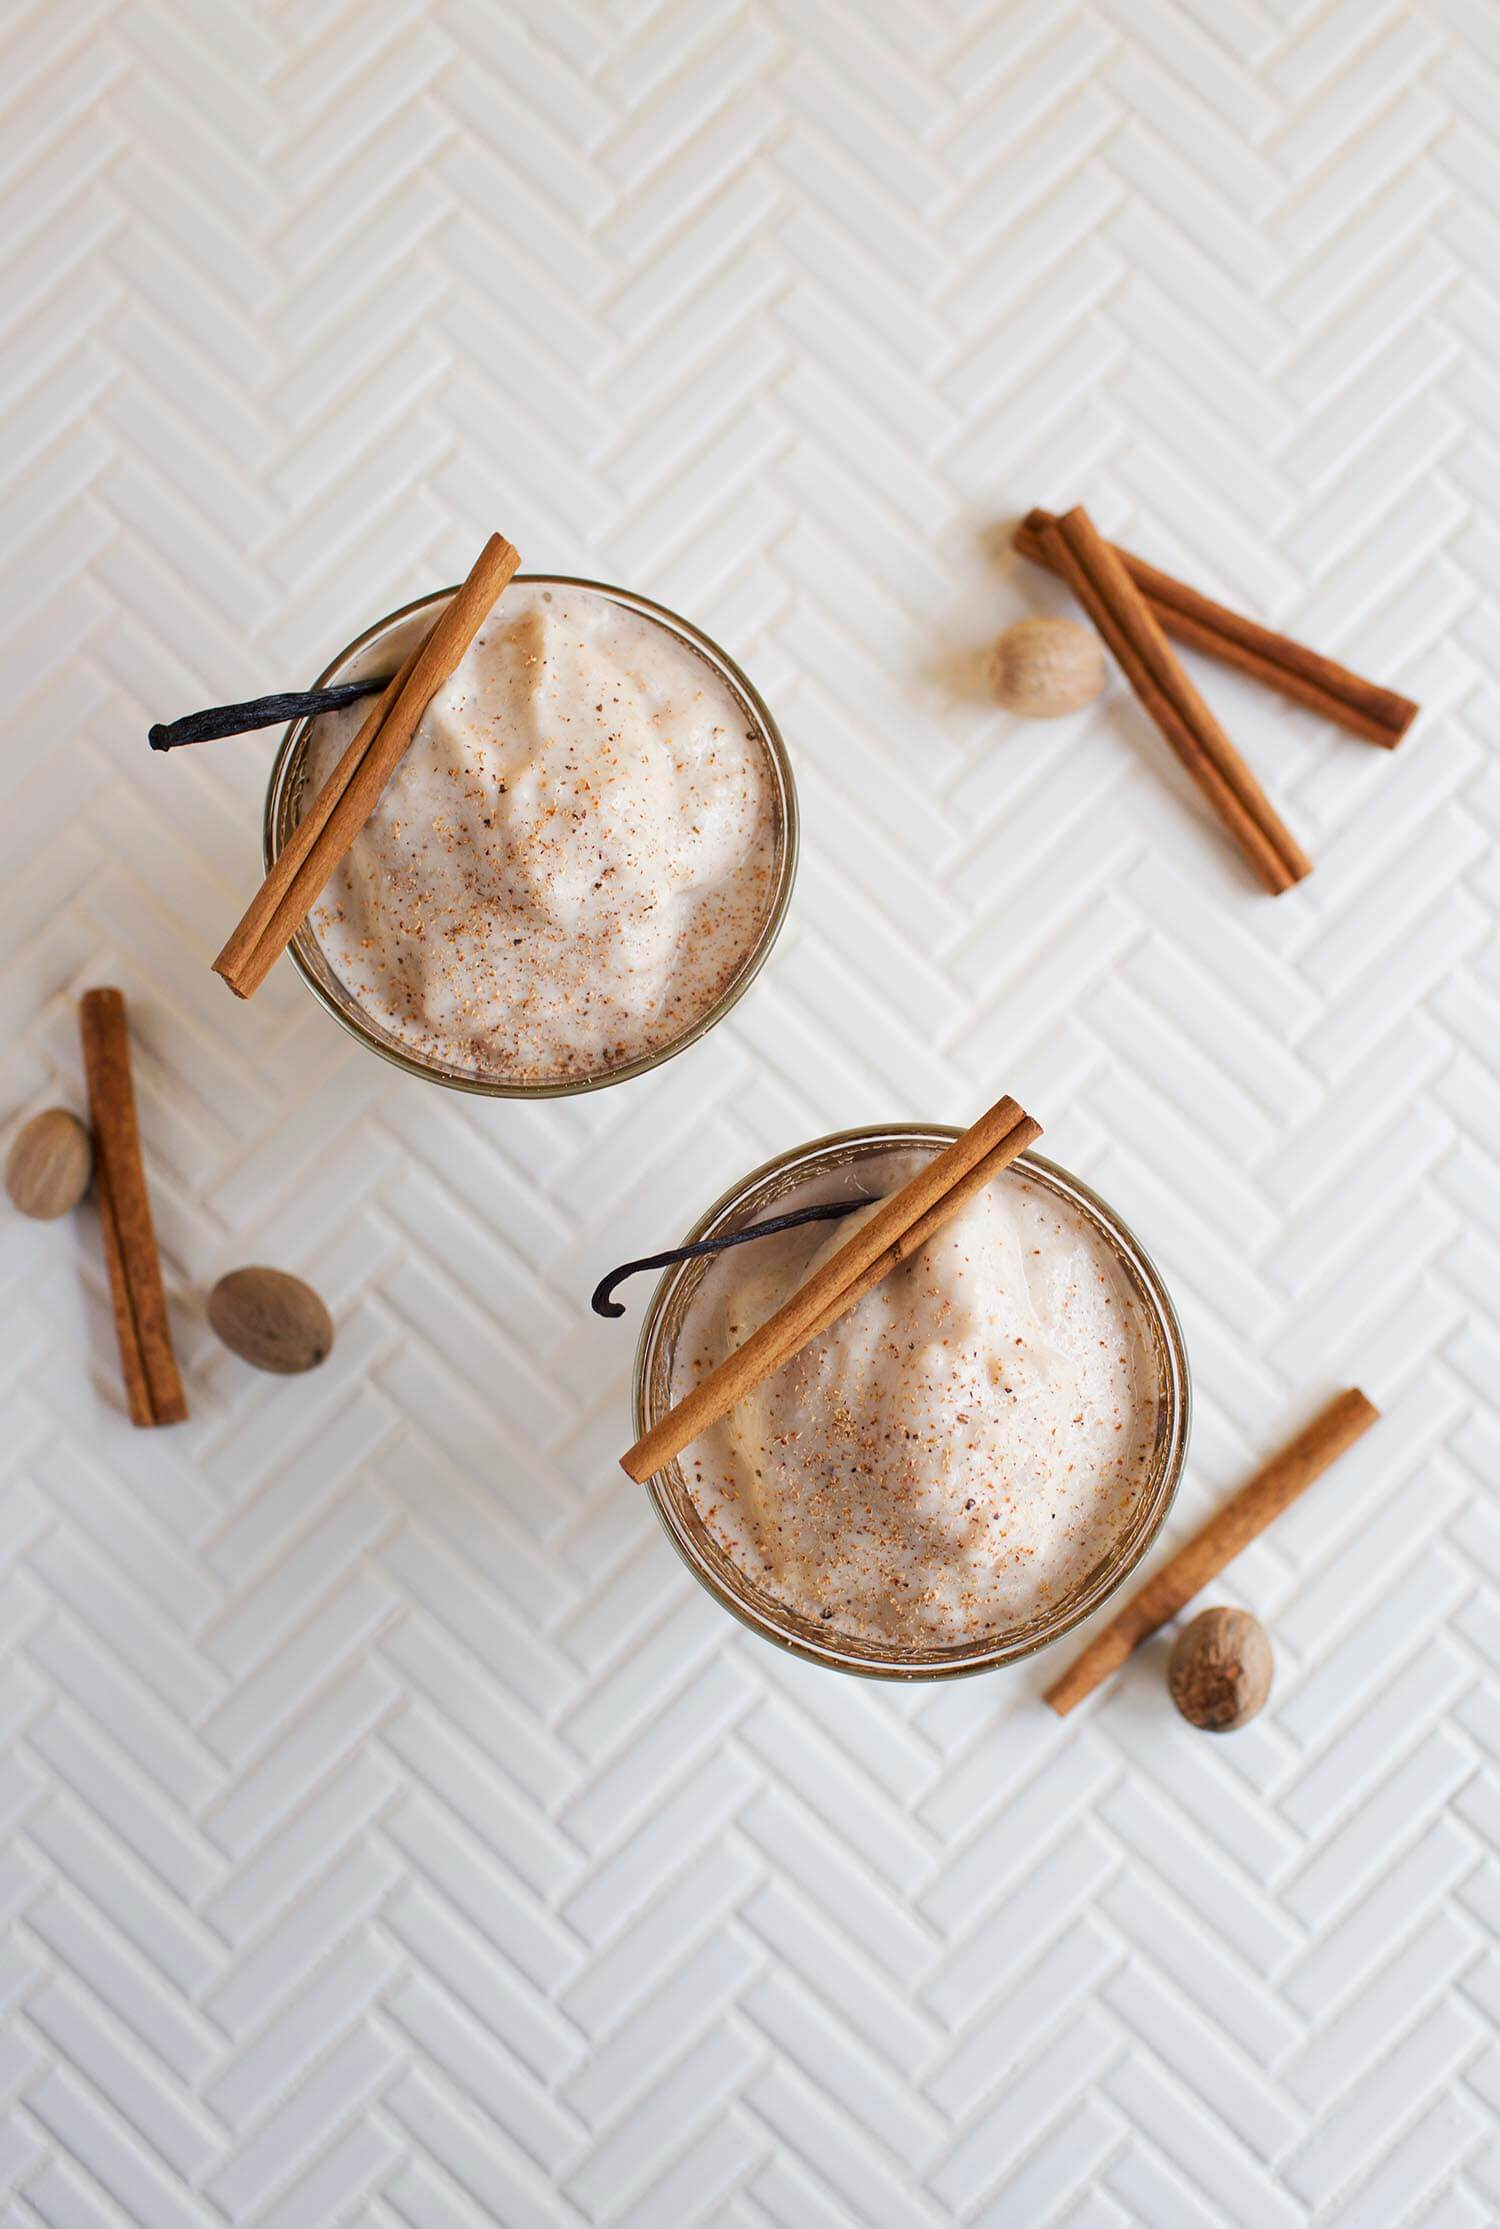 Spiced Vanilla Bean Bushwacker (via abeautifulmess.com)